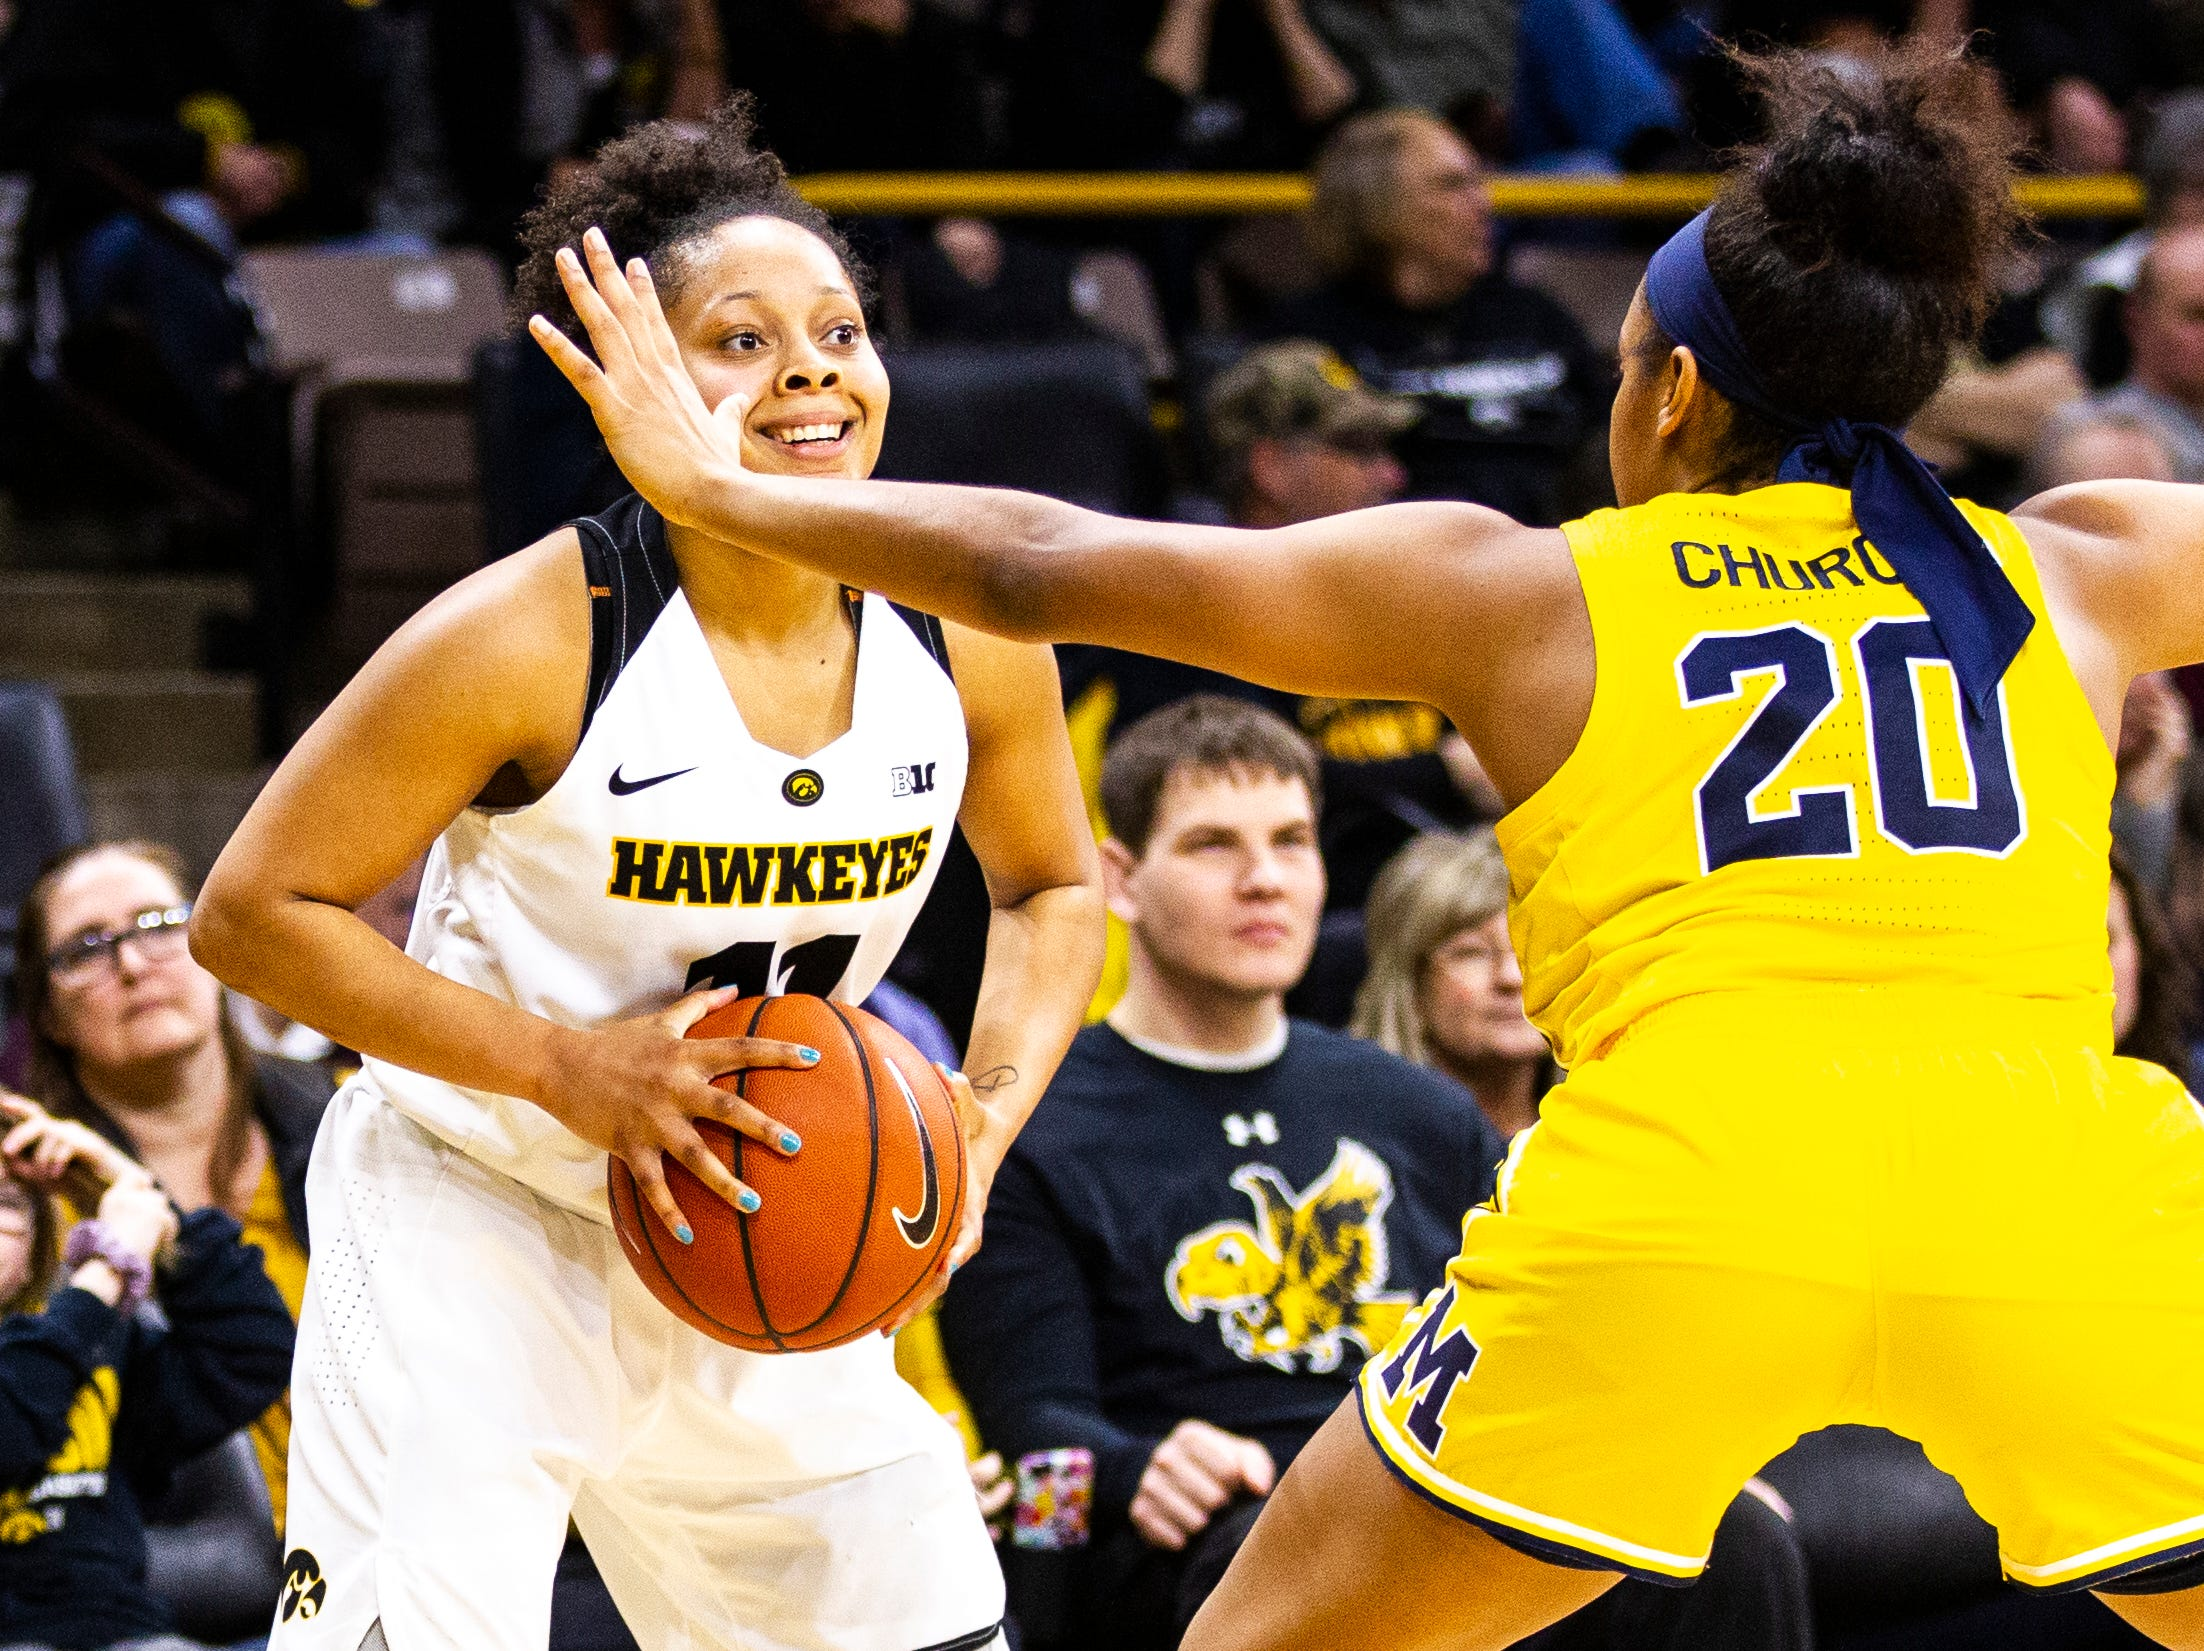 Iowa guard Tania Davis (11) smiles while being defended by Michigan guard Deja Church (20) during a NCAA Big Ten Conference women's basketball game on Thursday, Jan. 17, 2019, at Carver-Hawkeye Arena in Iowa City, Iowa.